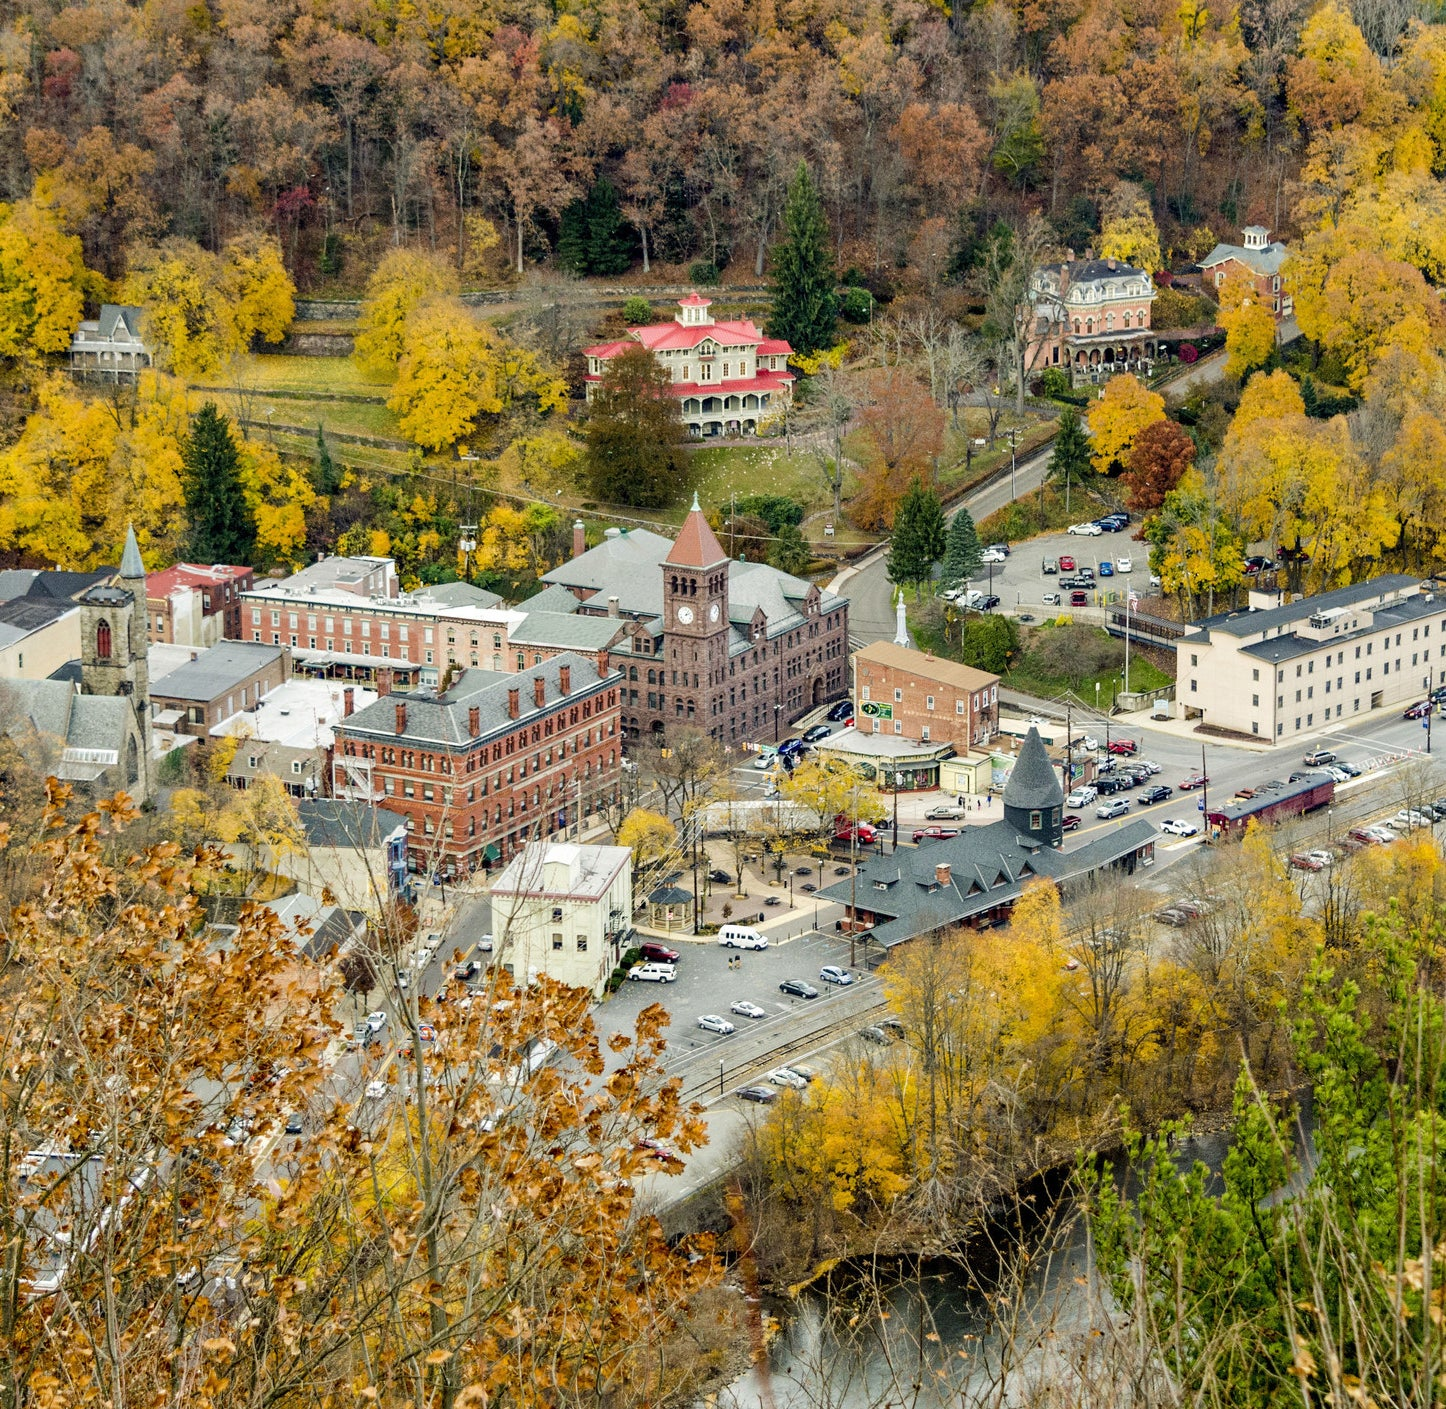 historic buildings and a townhall surrounded by fall foliage